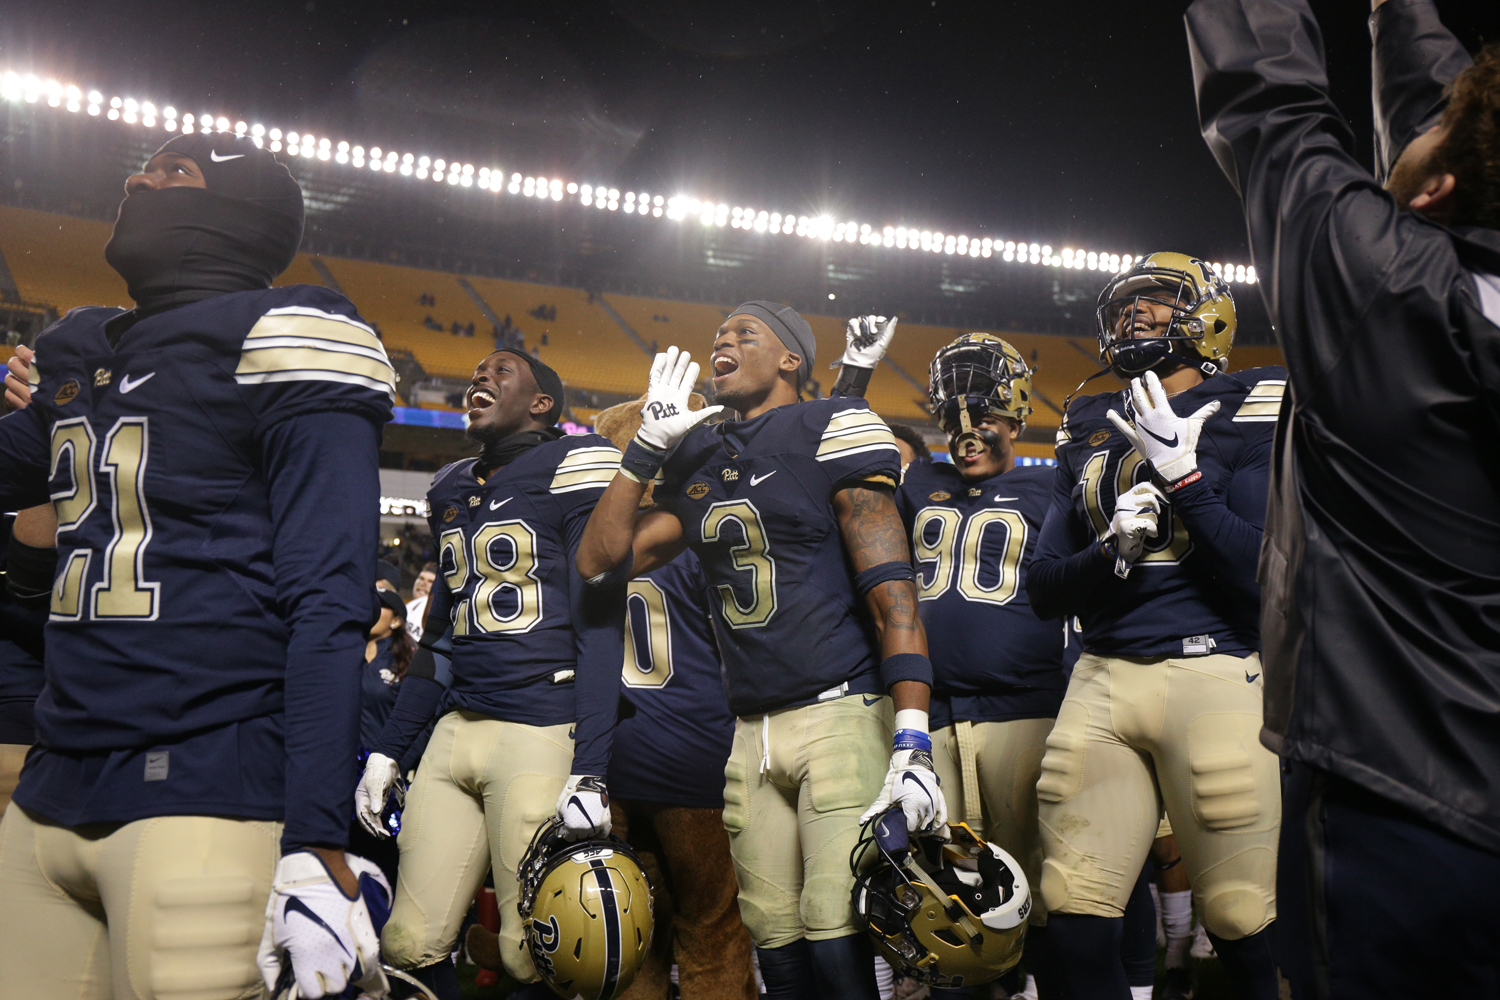 The Pitt football team pictured celebrating after beating Duke in October. They're celebrating again after winning the ACC's Coastal division.